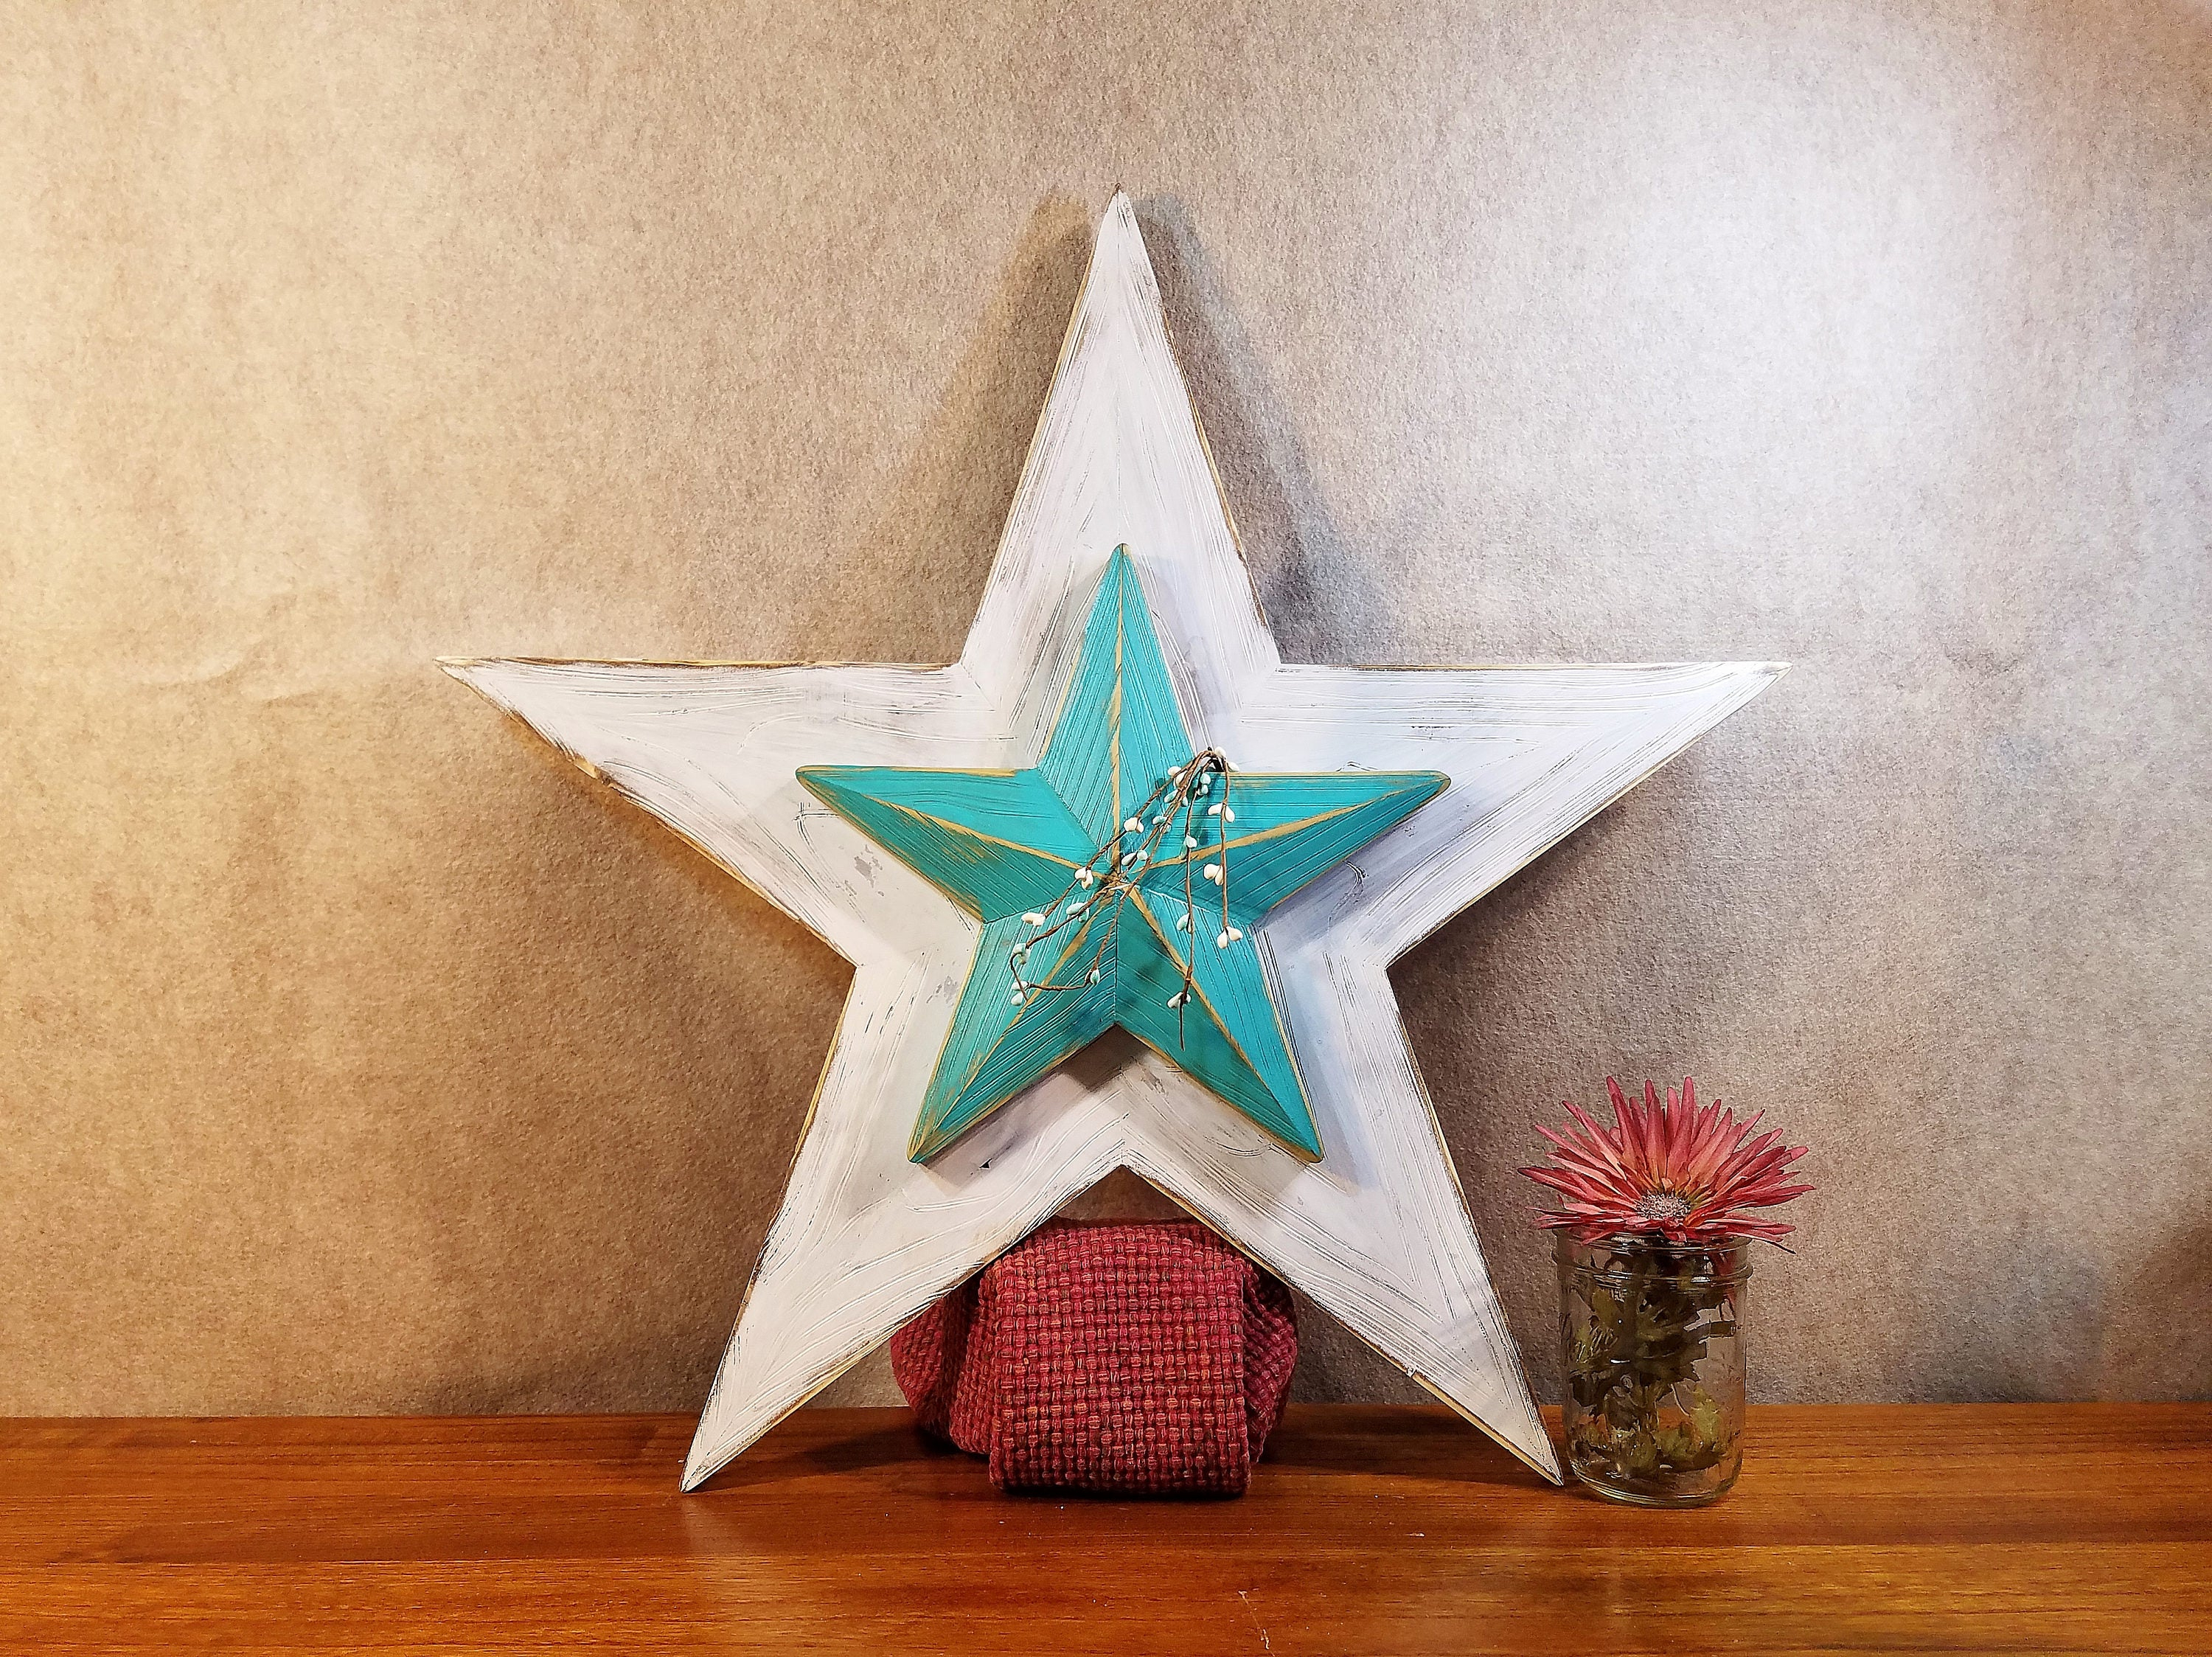 Rustic Wood Star, Barn Star, Set Of 2, Farmhouse Style, Home Decor, Wall Hanging, Painted Wooden Star, 10 Separate Cuts, White And Teal With Raised Star Wall Decor (View 7 of 30)